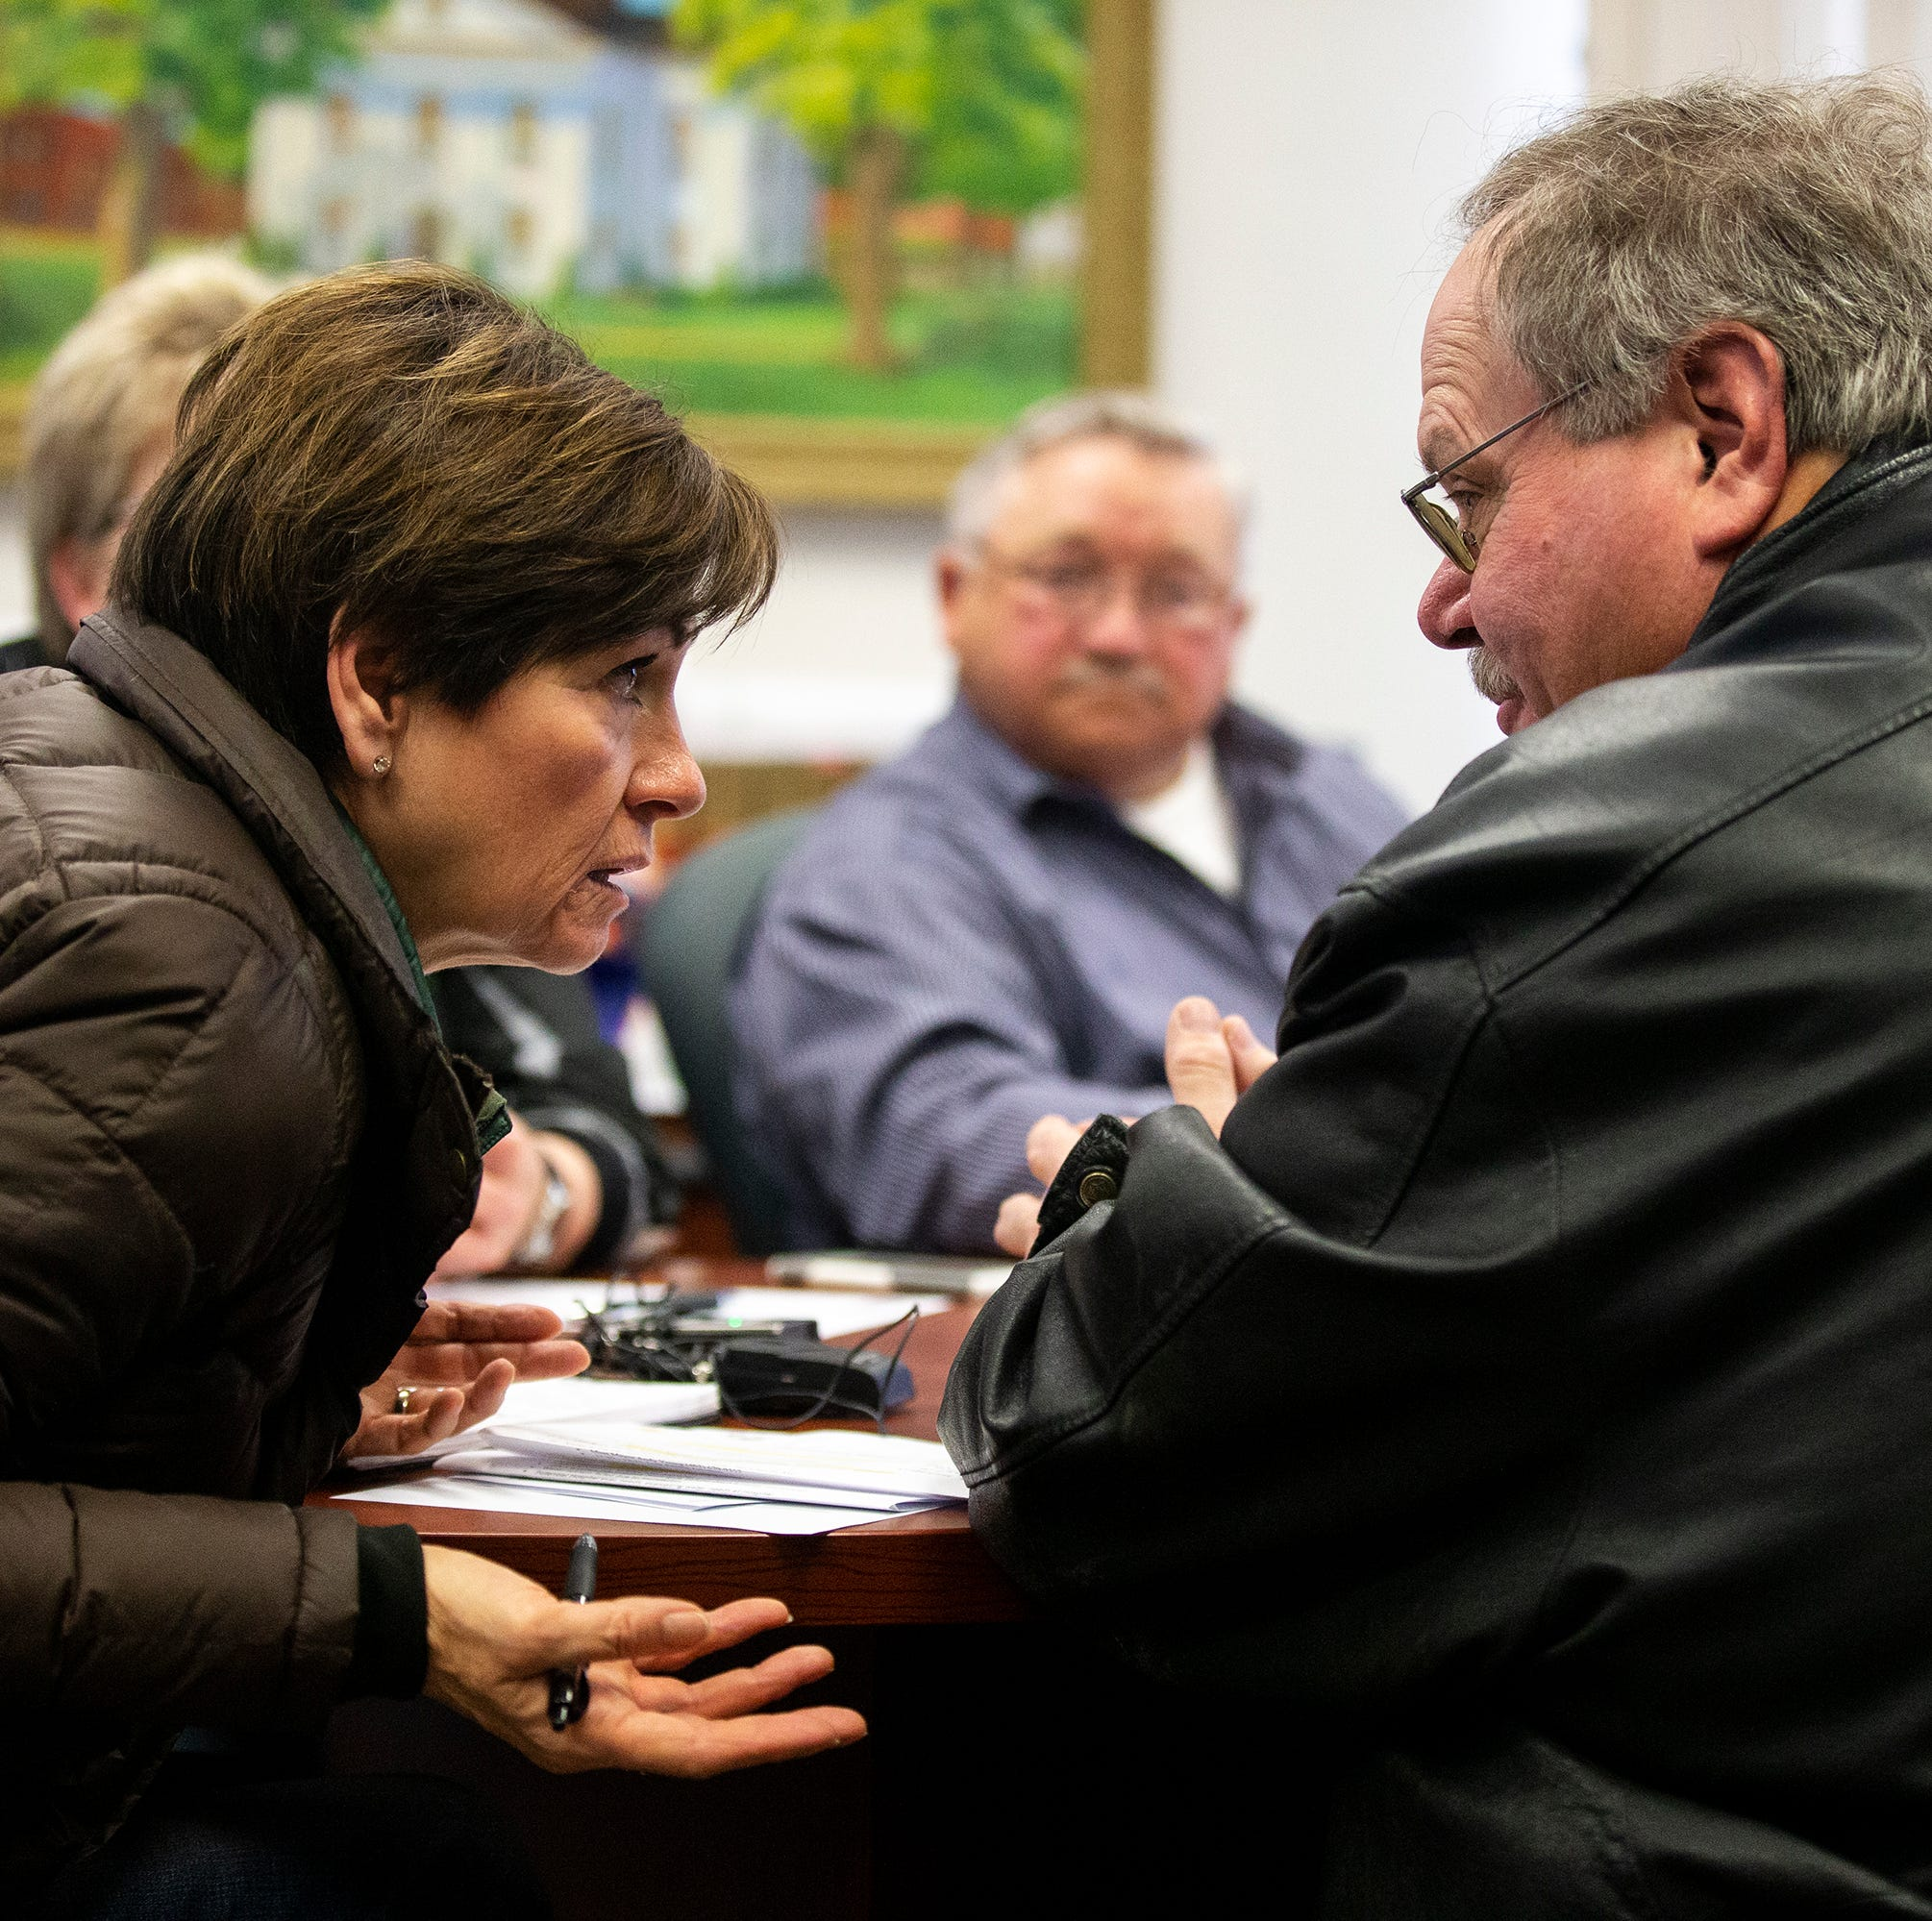 Gov. Reynolds issues disaster proclamation in 2 more Iowa counties, bringing total to 43